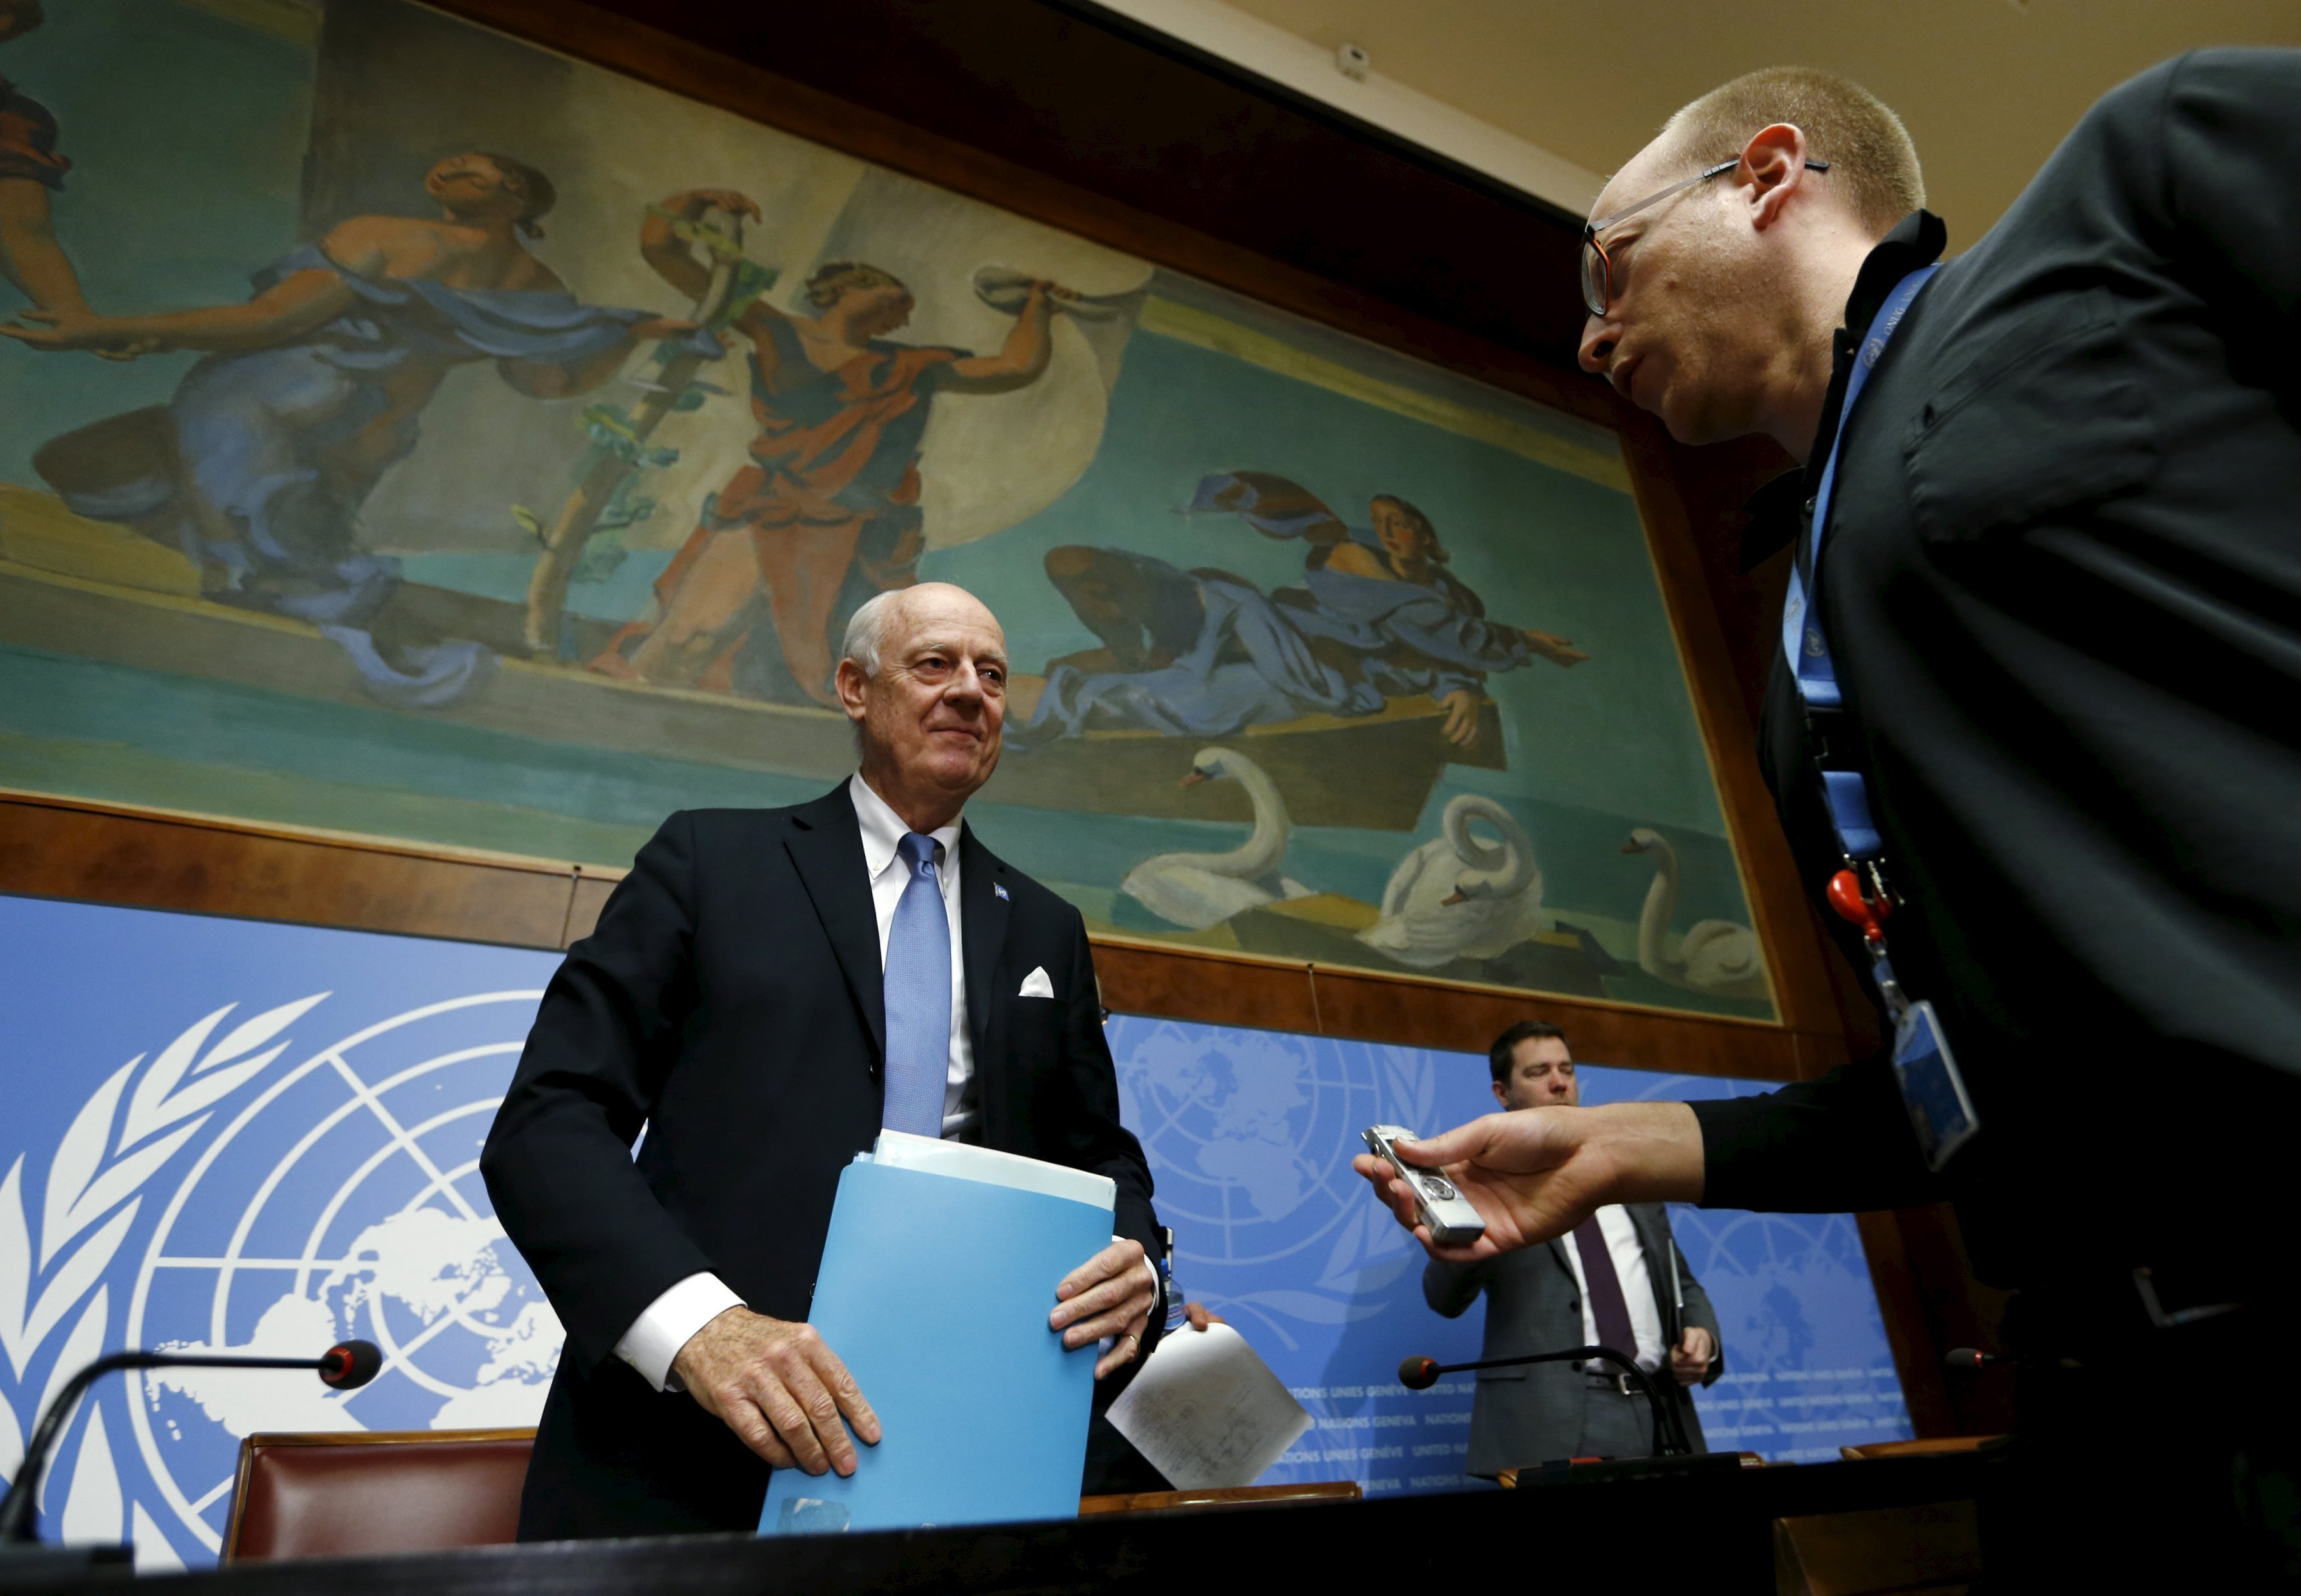 U.N. mediator for Syria, Staffan de Mistura (L) talks with Reuters journalist Tom Miles after a news conference at the end of the Syria peace talks at the United Nations in Geneva, Switzerland, March 24, 2016